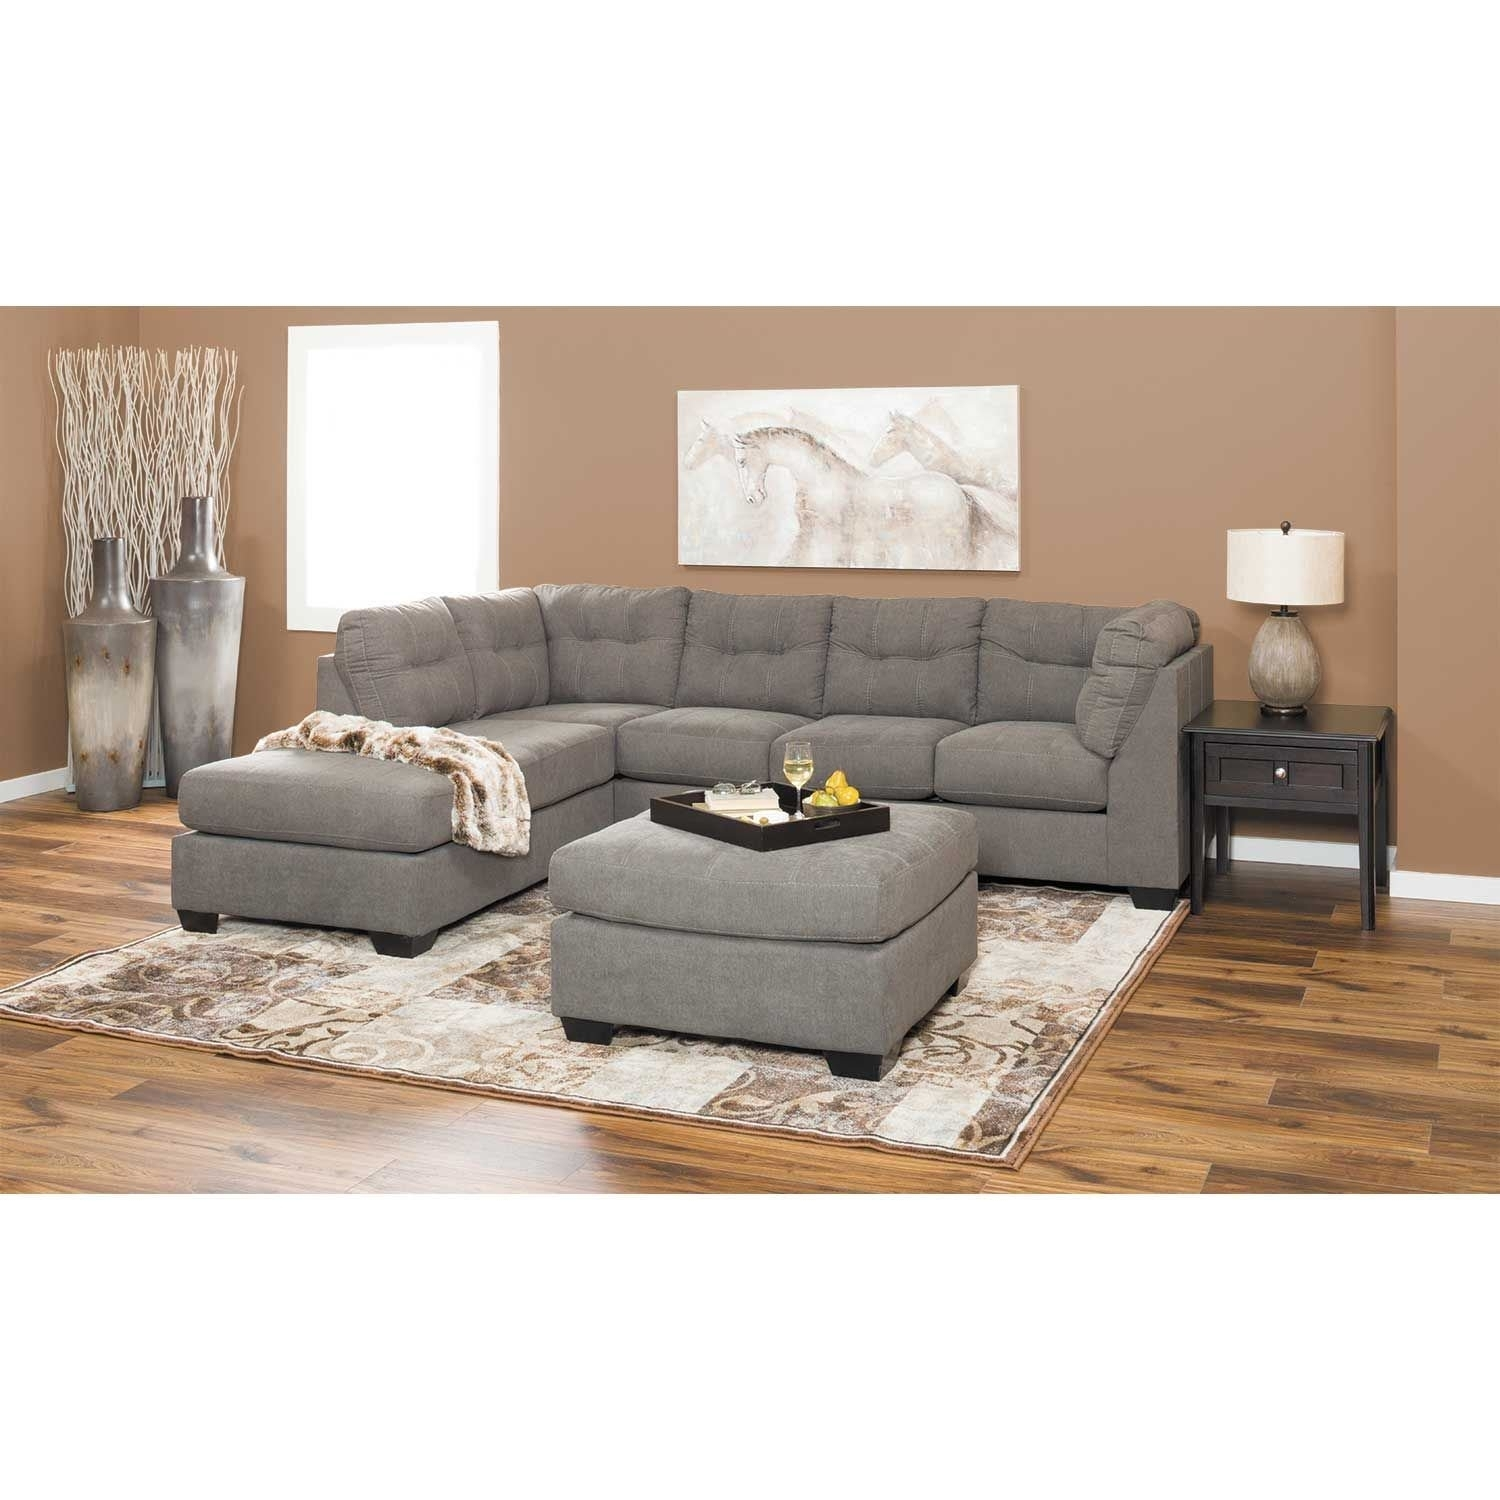 Maier Charcoal 2 Piece Sectional With Laf Chaise | 4520016/67 Inside Arrowmask 2 Piece Sectionals With Laf Chaise (Image 11 of 25)